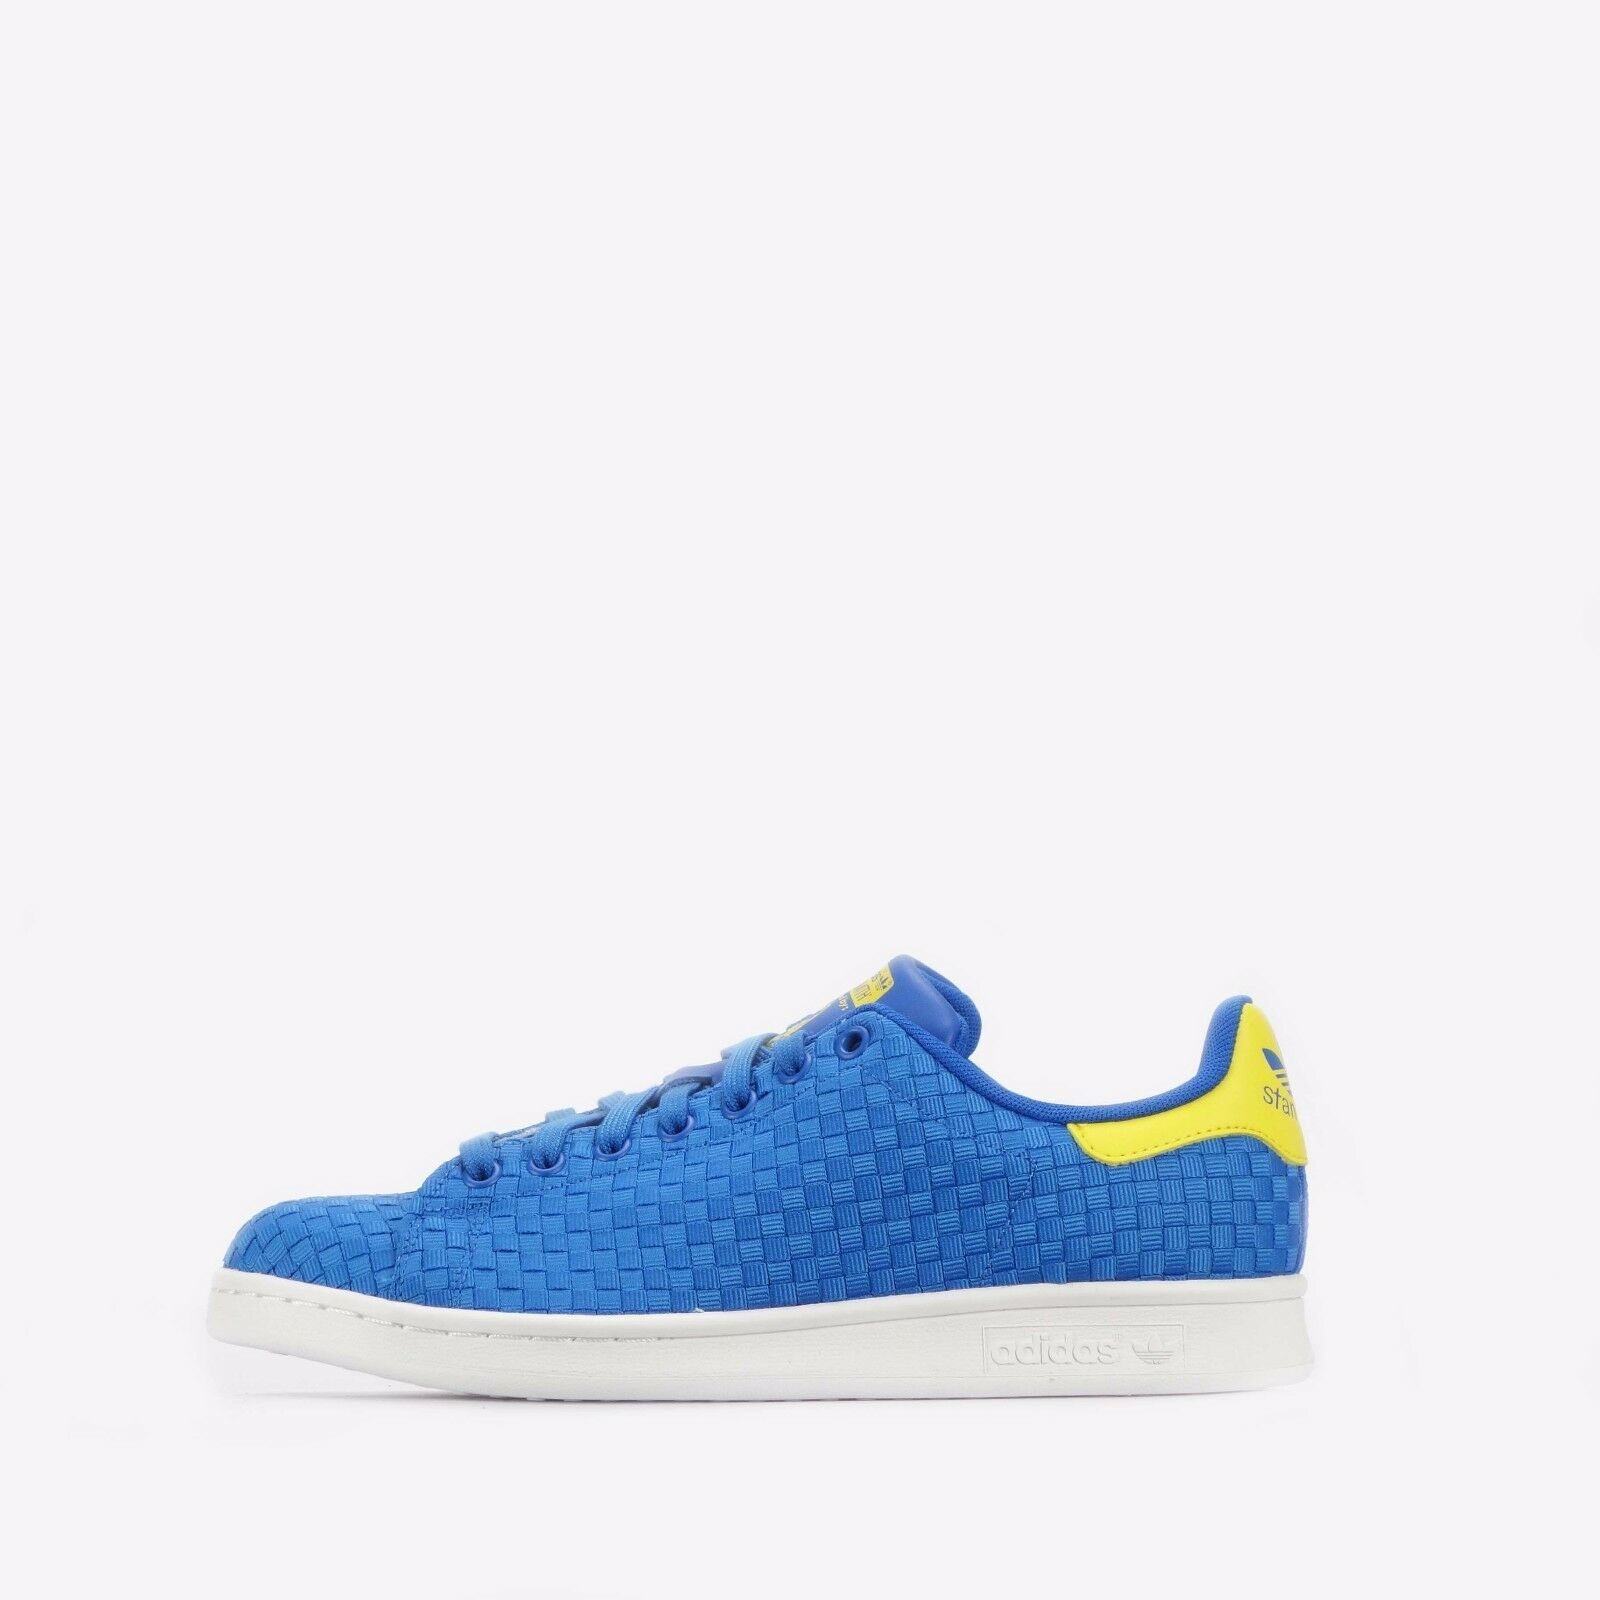 Adidas Originals Stan Smith Woven Men's shoes bluee Yellow